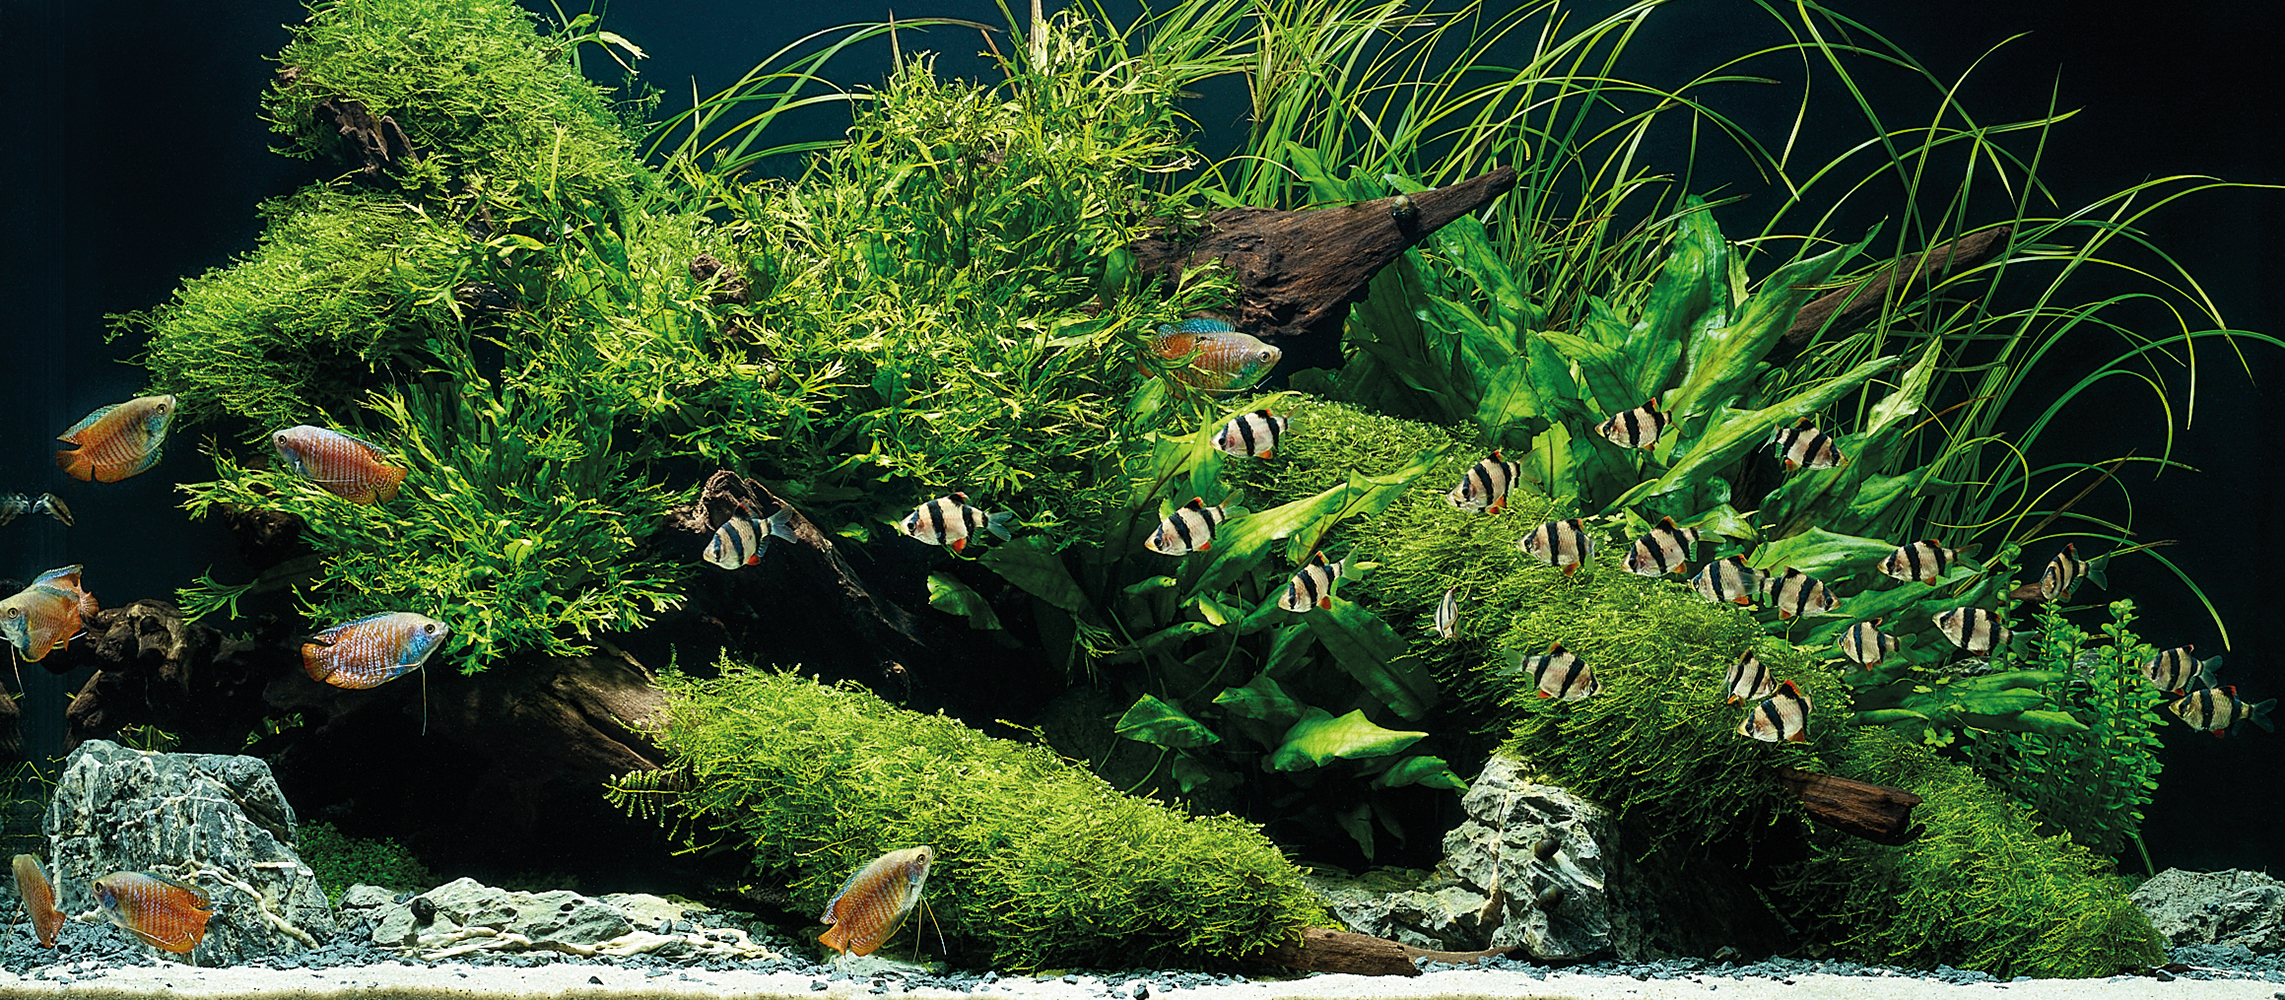 Plants pictured:  Cryptocoryne wendtii 'Green', Cyperus helferi, Microsorum pteropus 'Windeløv', & Vesicularia dubyana 'Christmas'   Fish pictured:  Powder Blue Dwarf Gourami (Colisa lalia) and Tiger Barb (Puntius tetrazona)